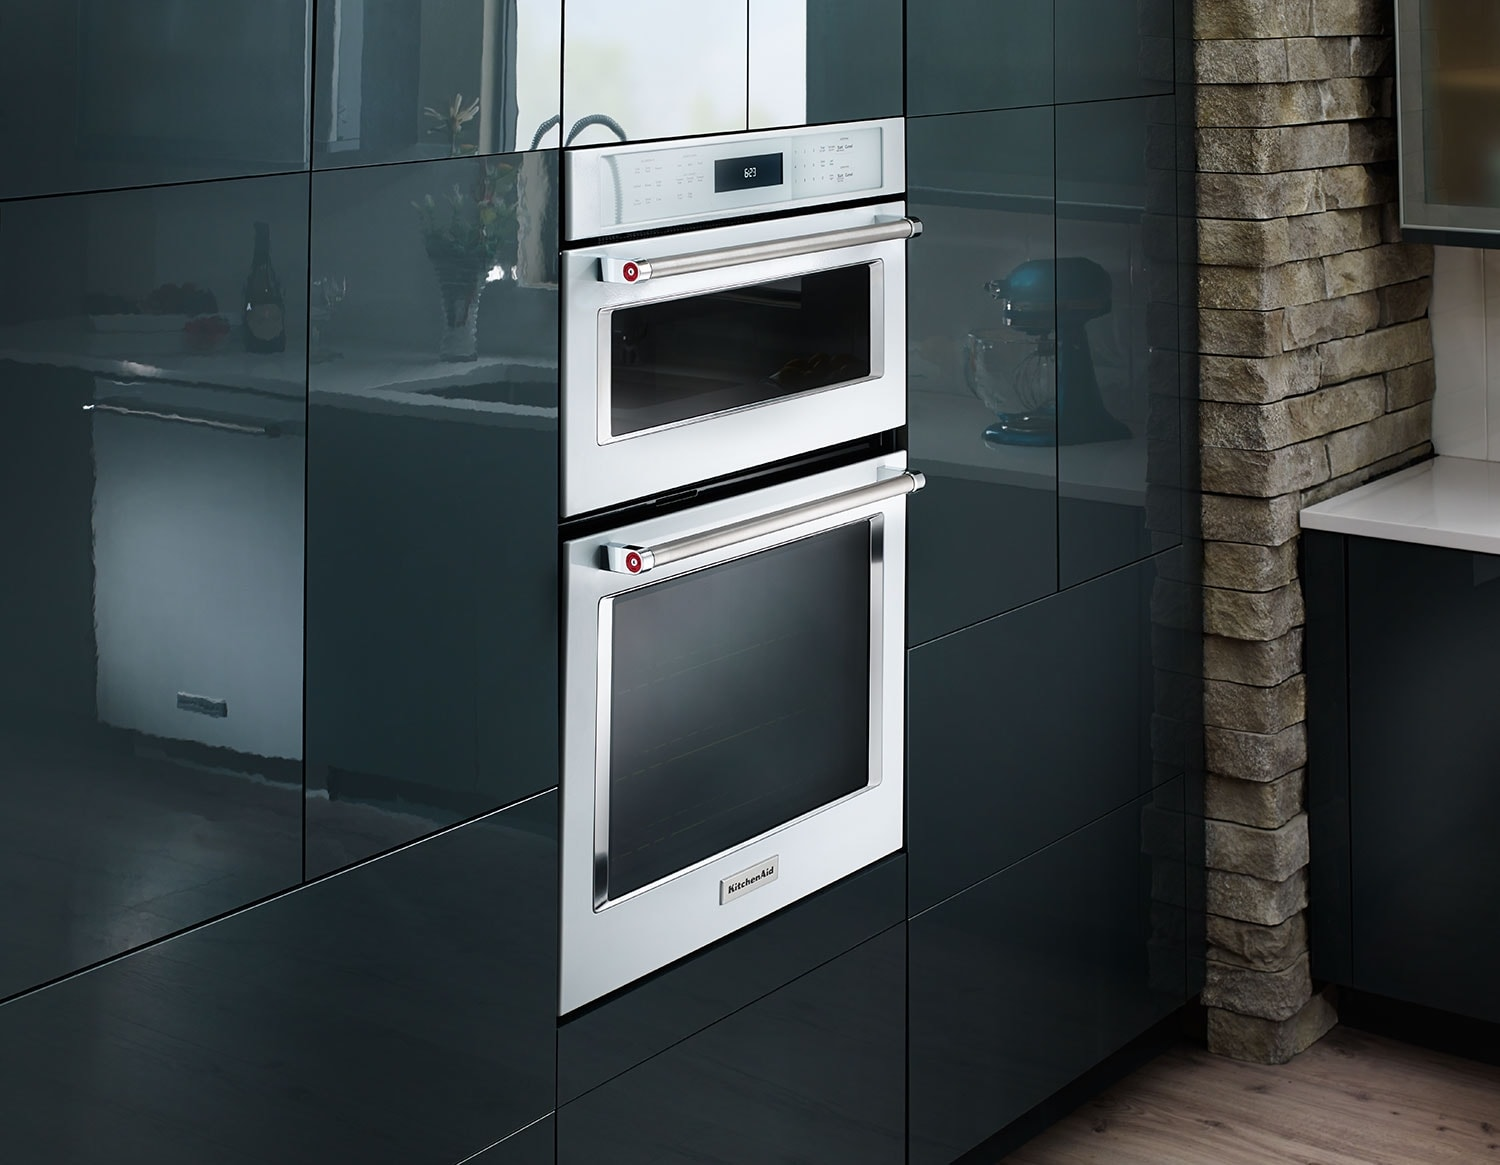 Kitchenaid 30 Double Wall Oven With Microwave And